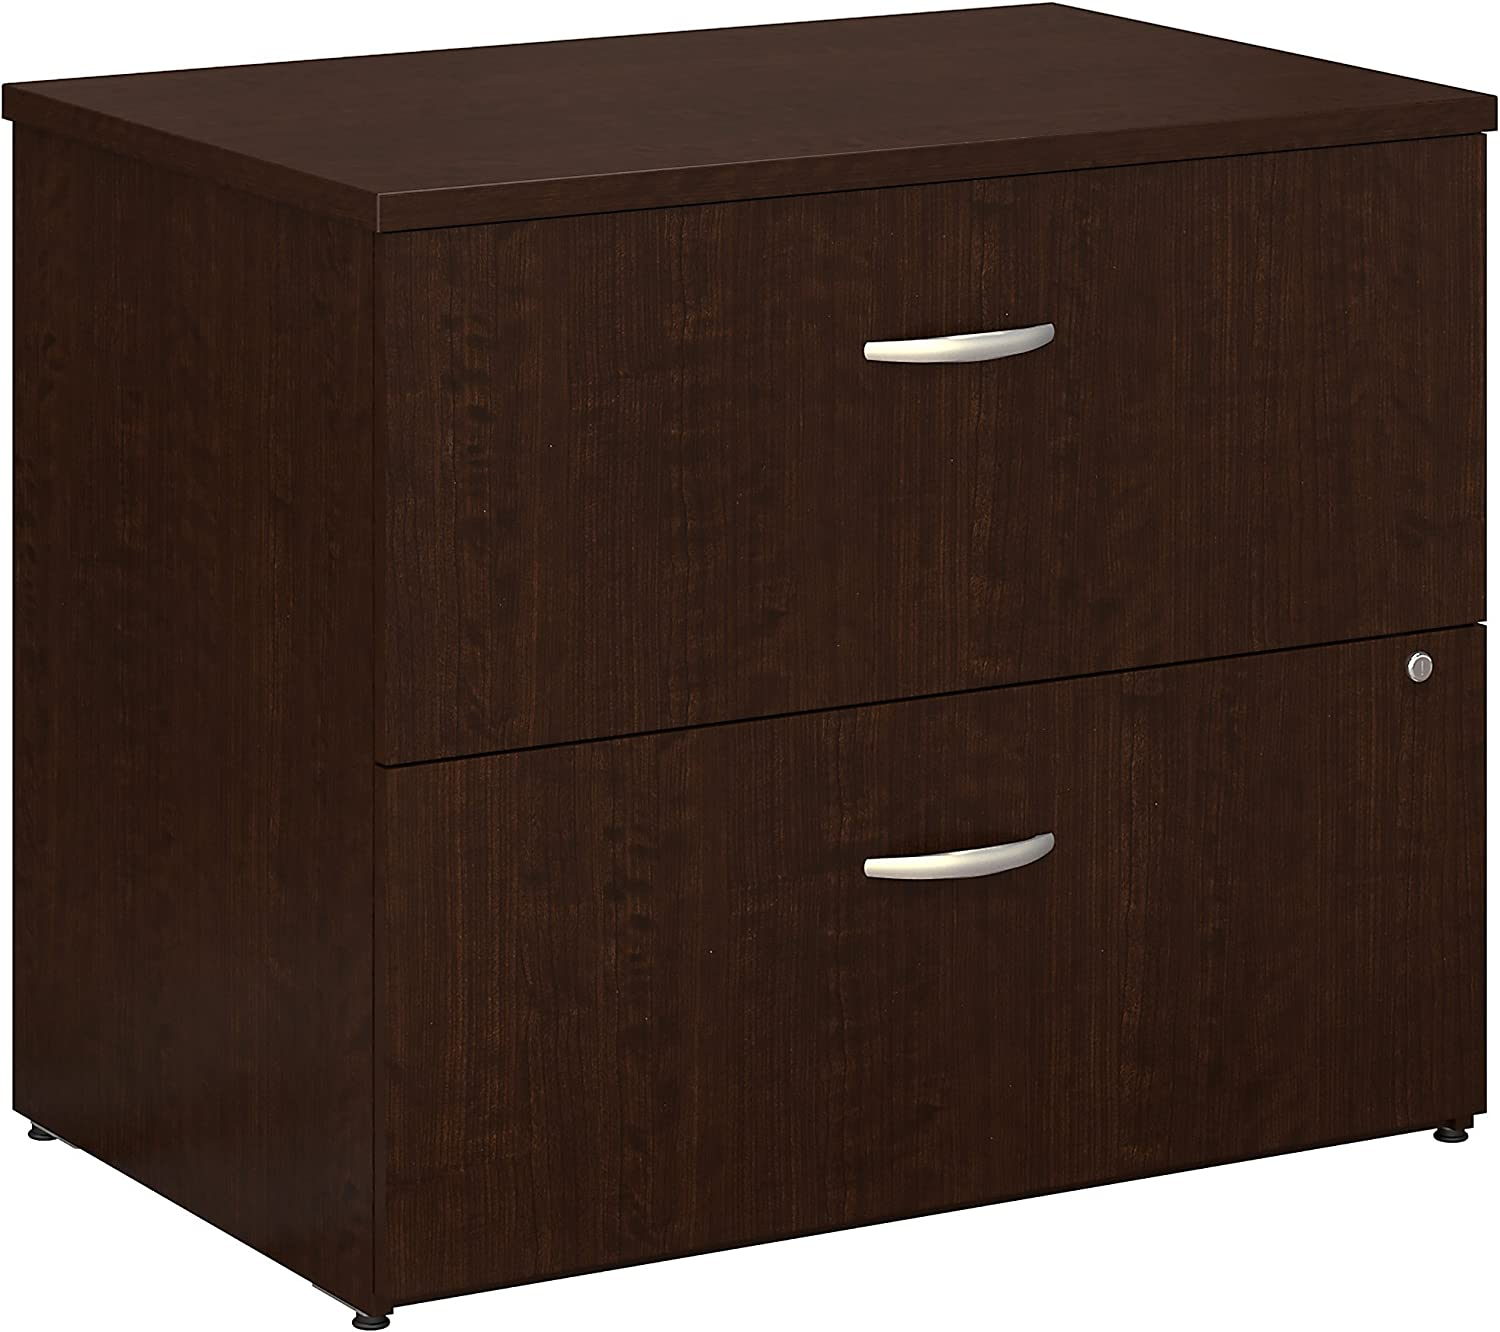 Bush Business Furniture Series C 36W 2 Drawer Lateral File in Mocha Cherry